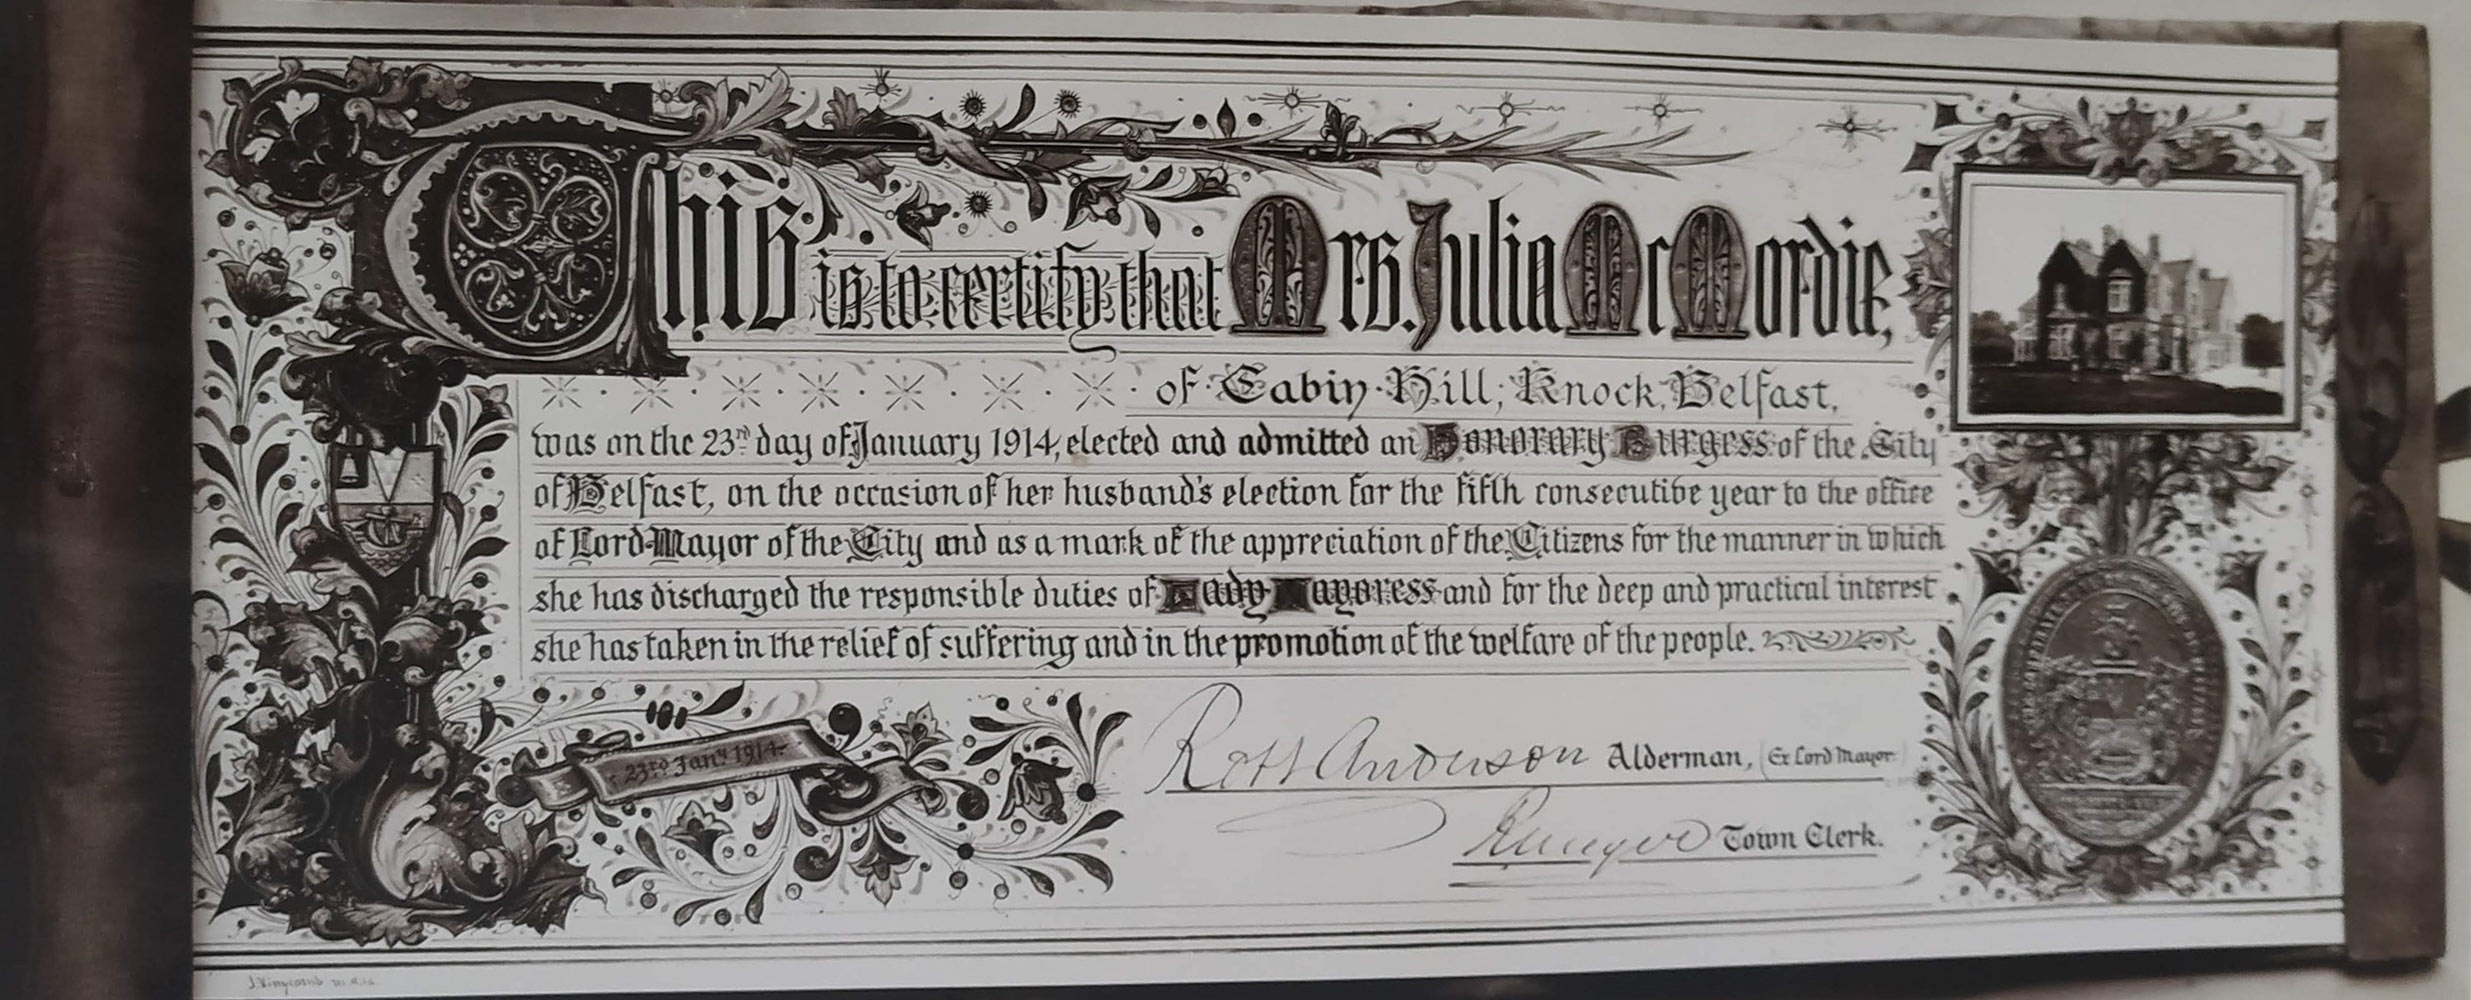 Photograph of scroll presented to Mrs. Julia McMordie admitting her as an Honorary Burgess of the City of Belfast. 1914.